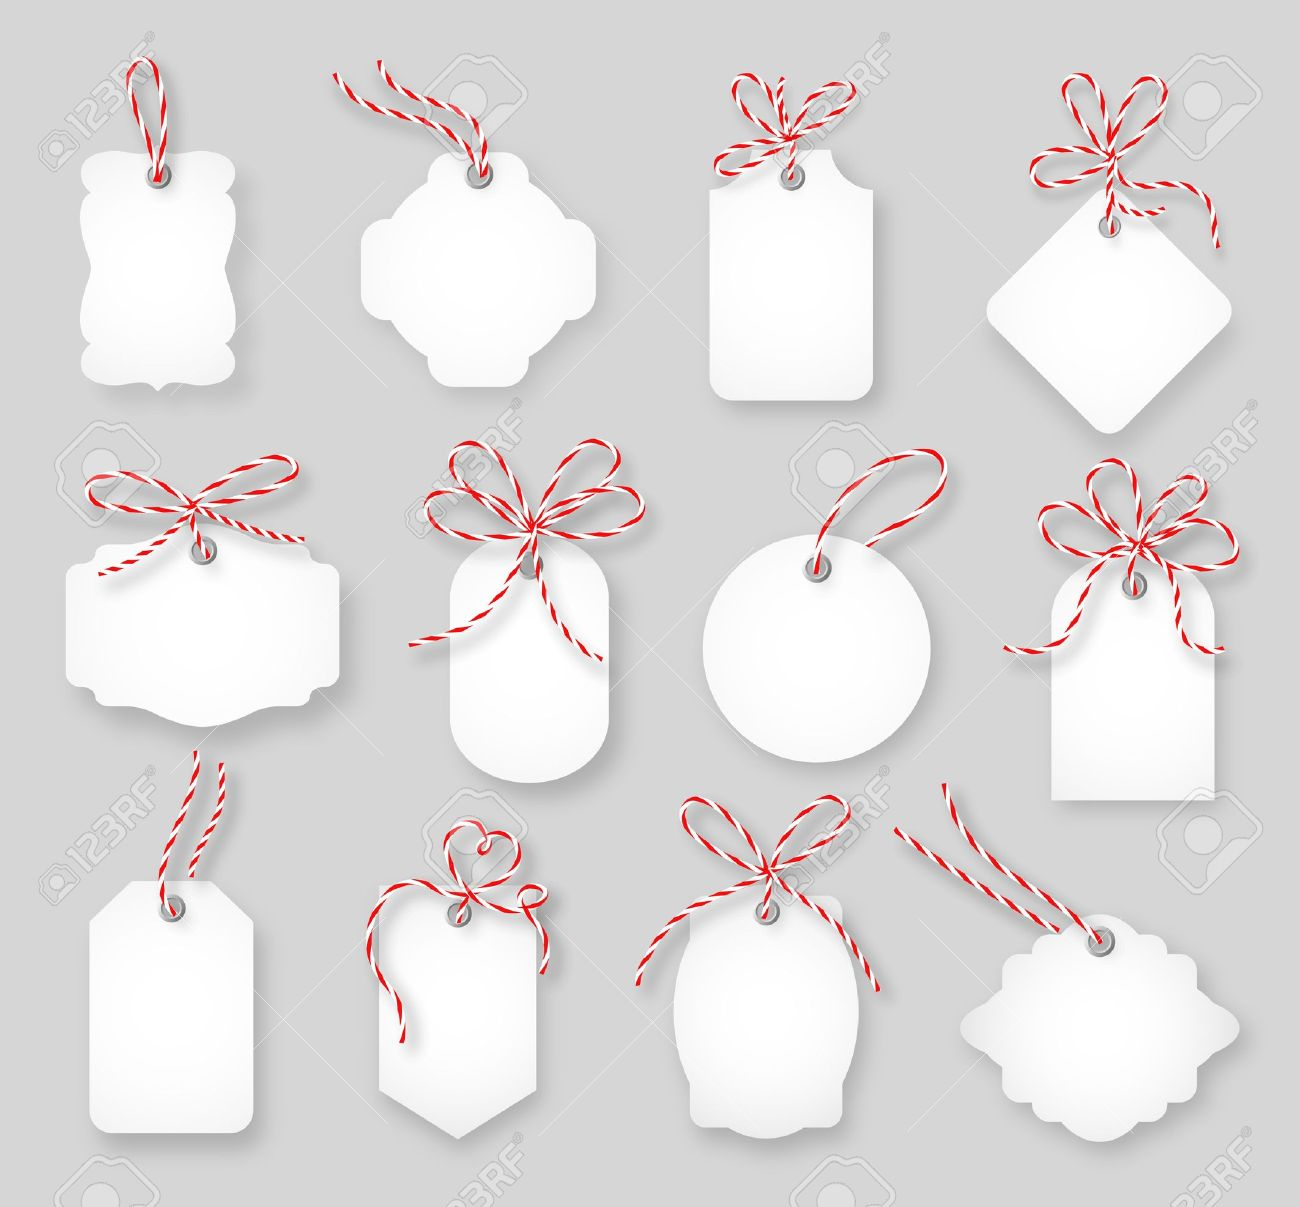 Gift Tag Stock Photos. Royalty Free Gift Tag Images